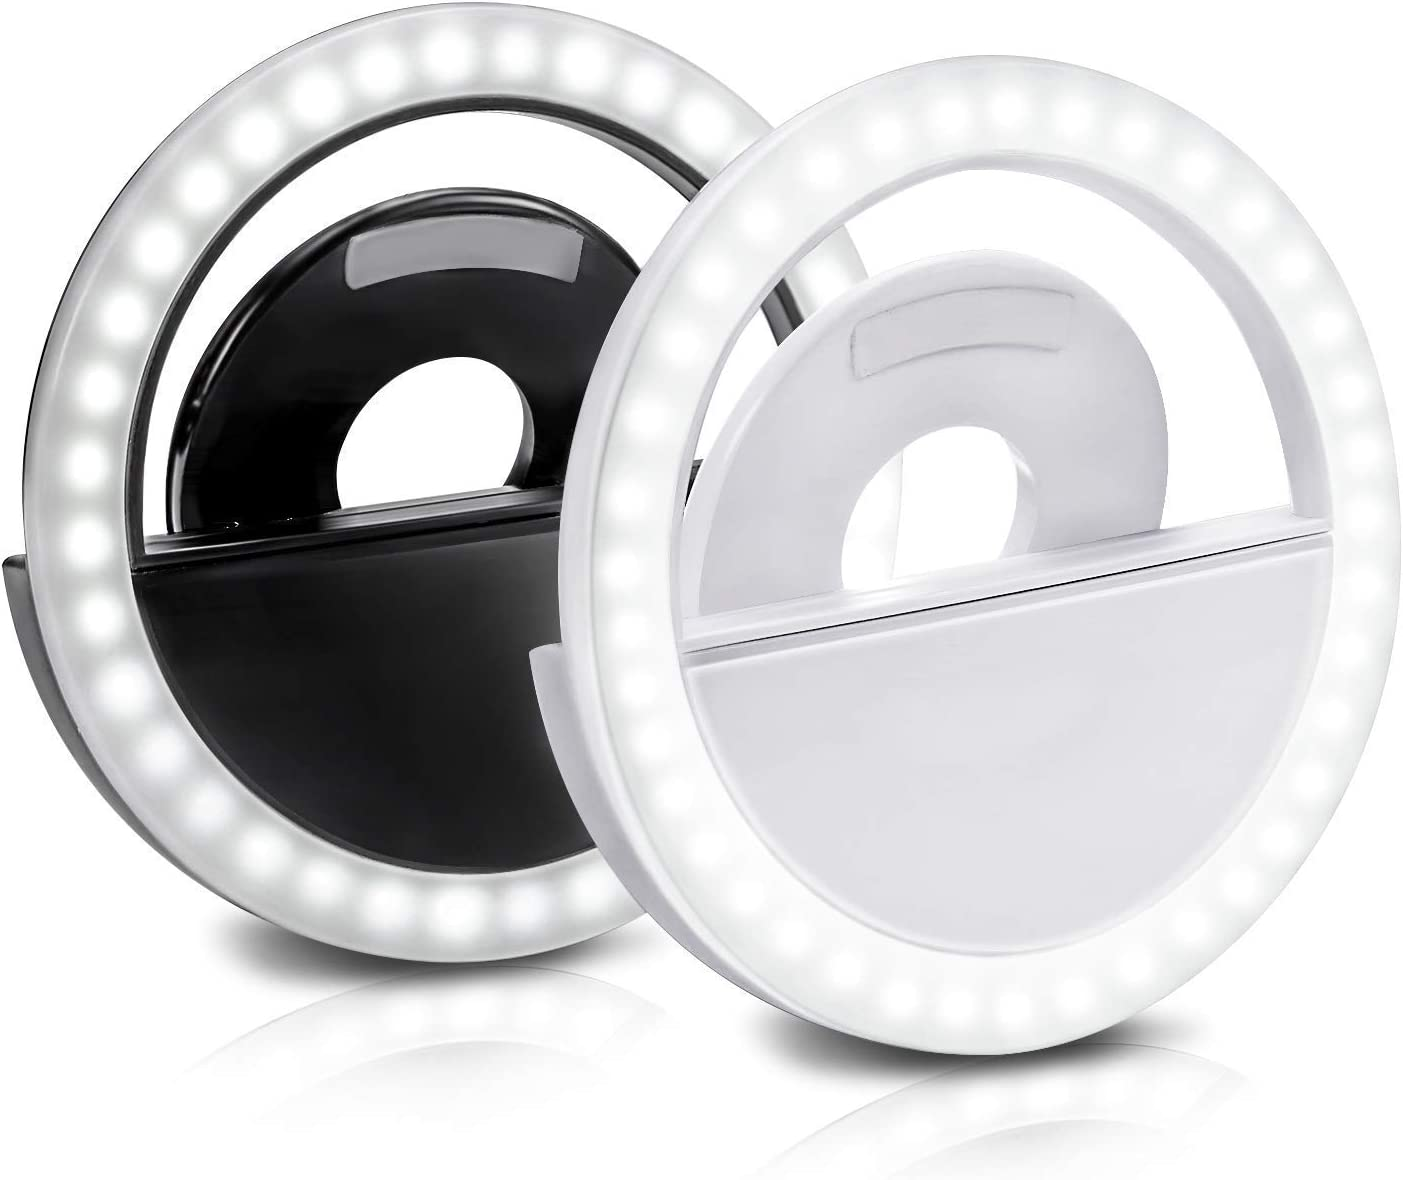 Selfie Ring Light 2 Omaha Mall Pack Modes Rechargeable Clip-on Quality inspection Cel 3